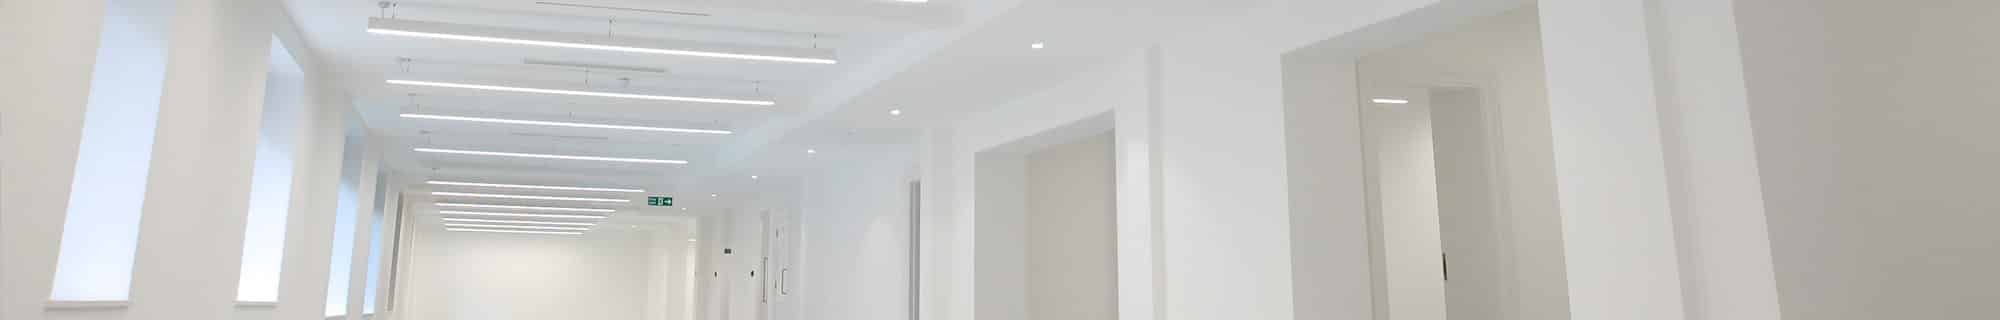 Mount lighting luminaires installed in hallway